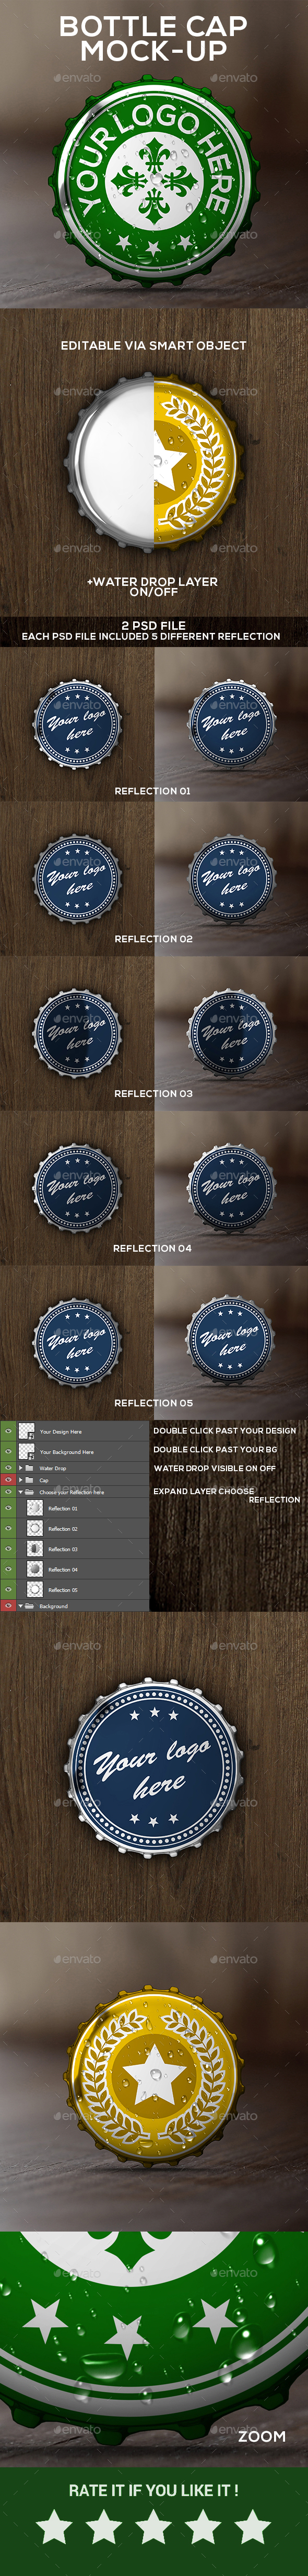 Bottle Cap Mock-up - Food and Drink Packaging